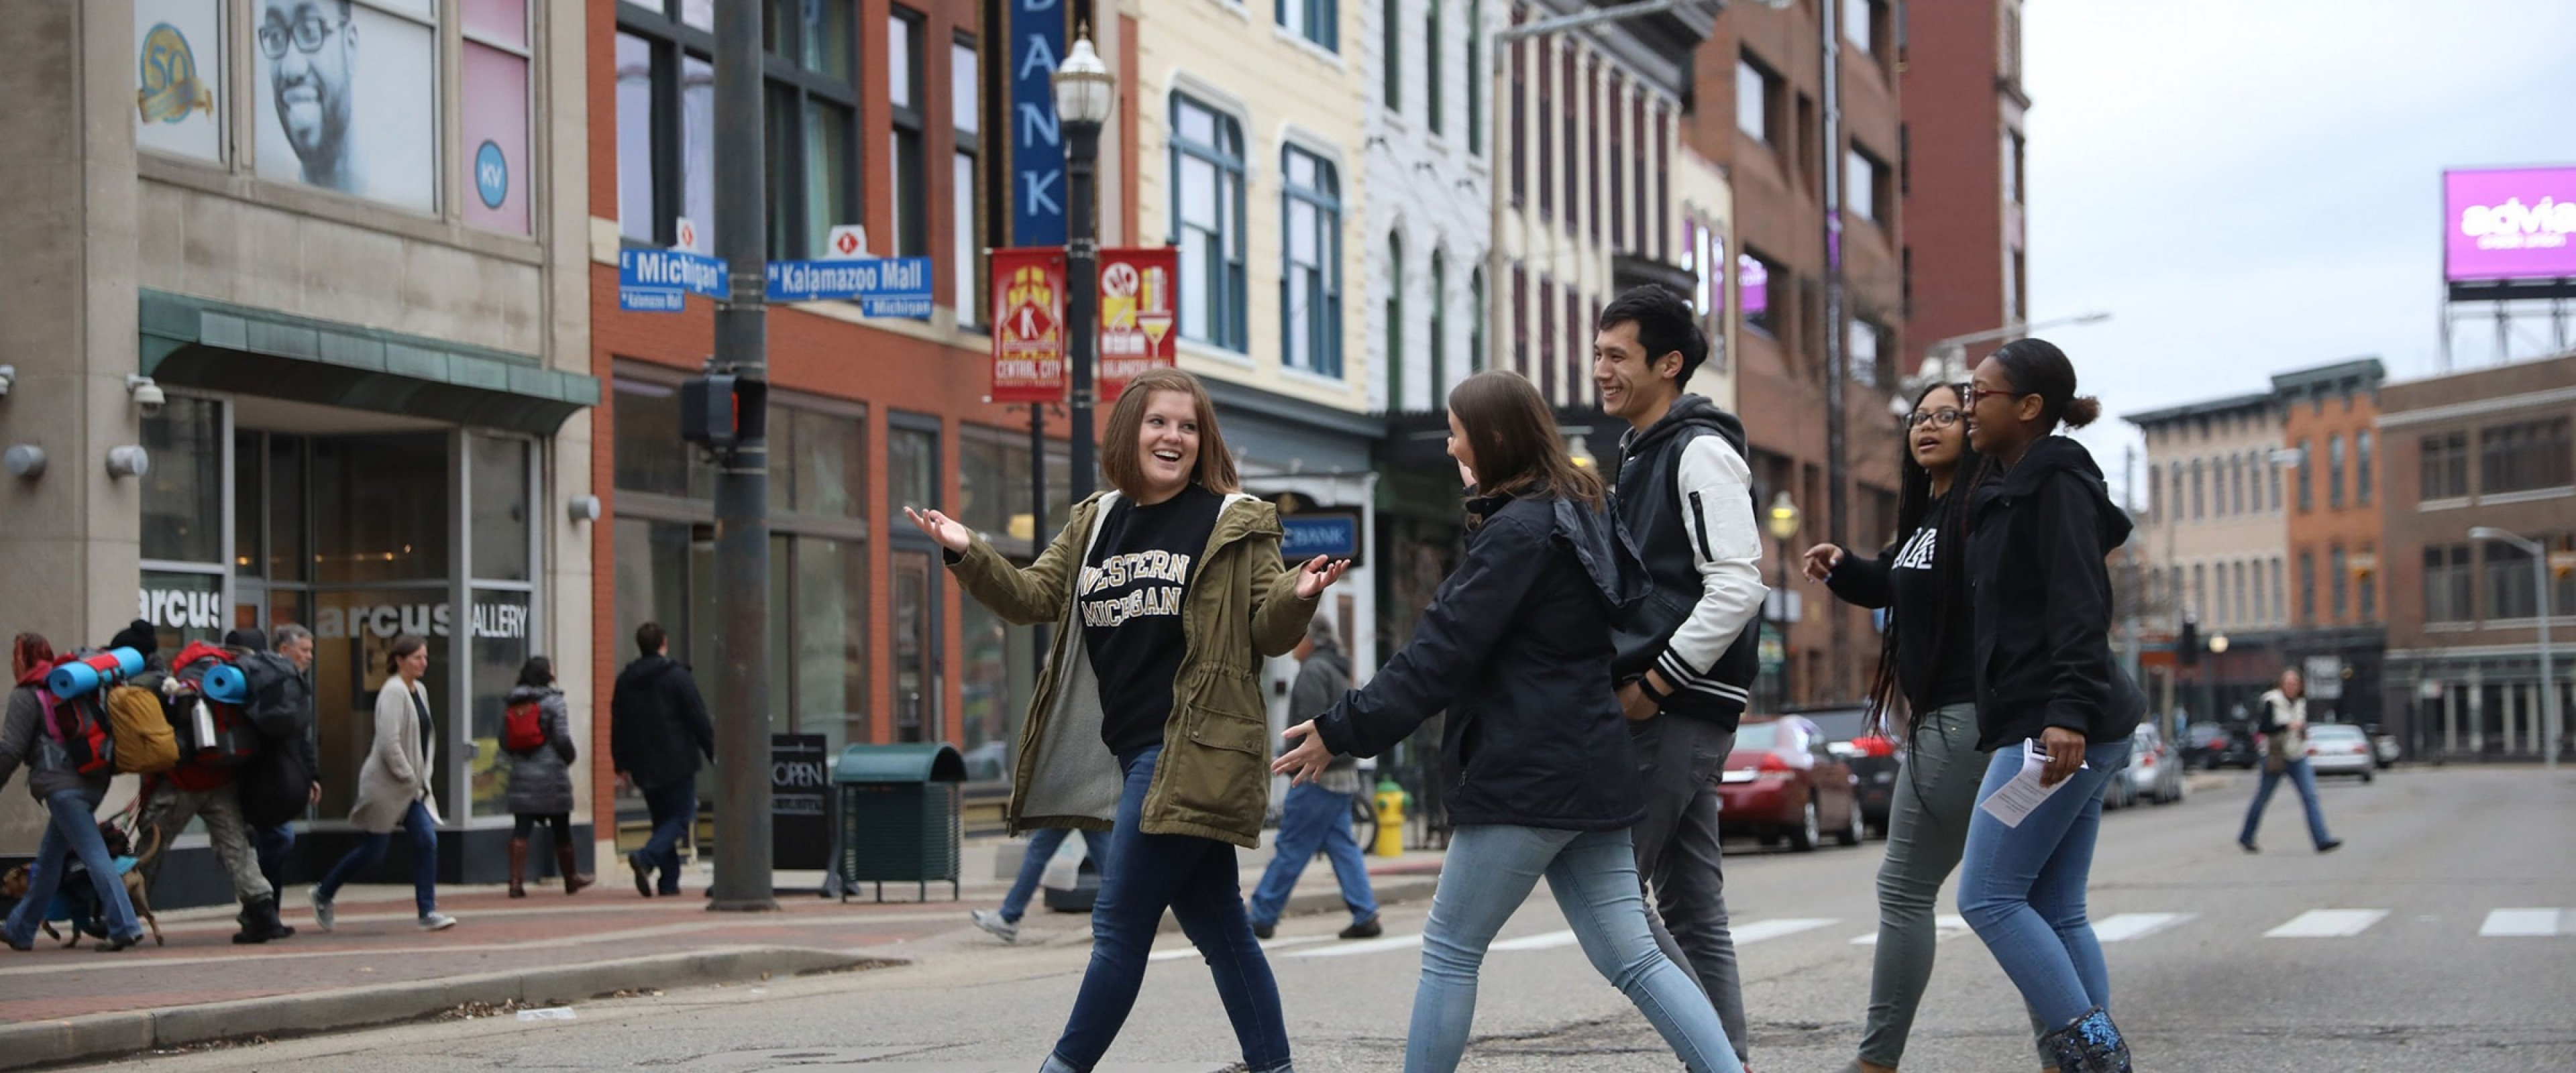 A group of WMU students cross West Michigan Avenue in downtown Kalamazoo